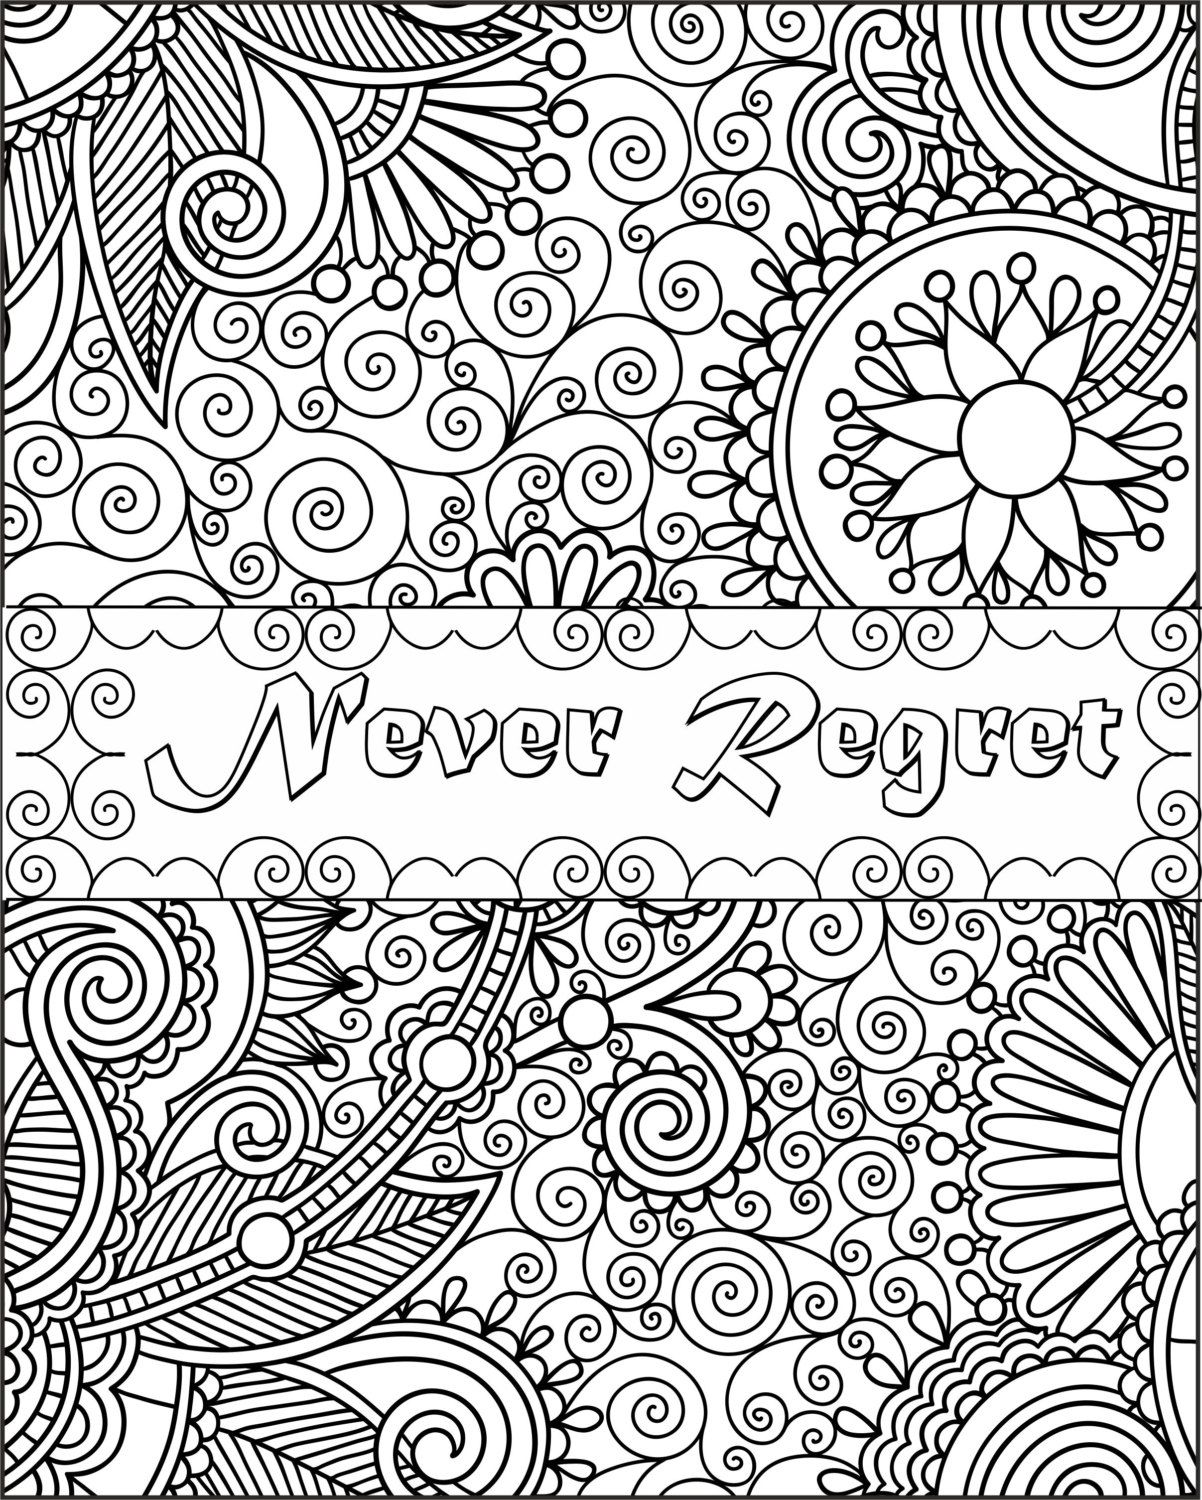 Inspirational Fun Quotes Colouring Pages Set Of 5 Quote Coloring Pages Coloring Pages Inspirational Coloring Book Pages